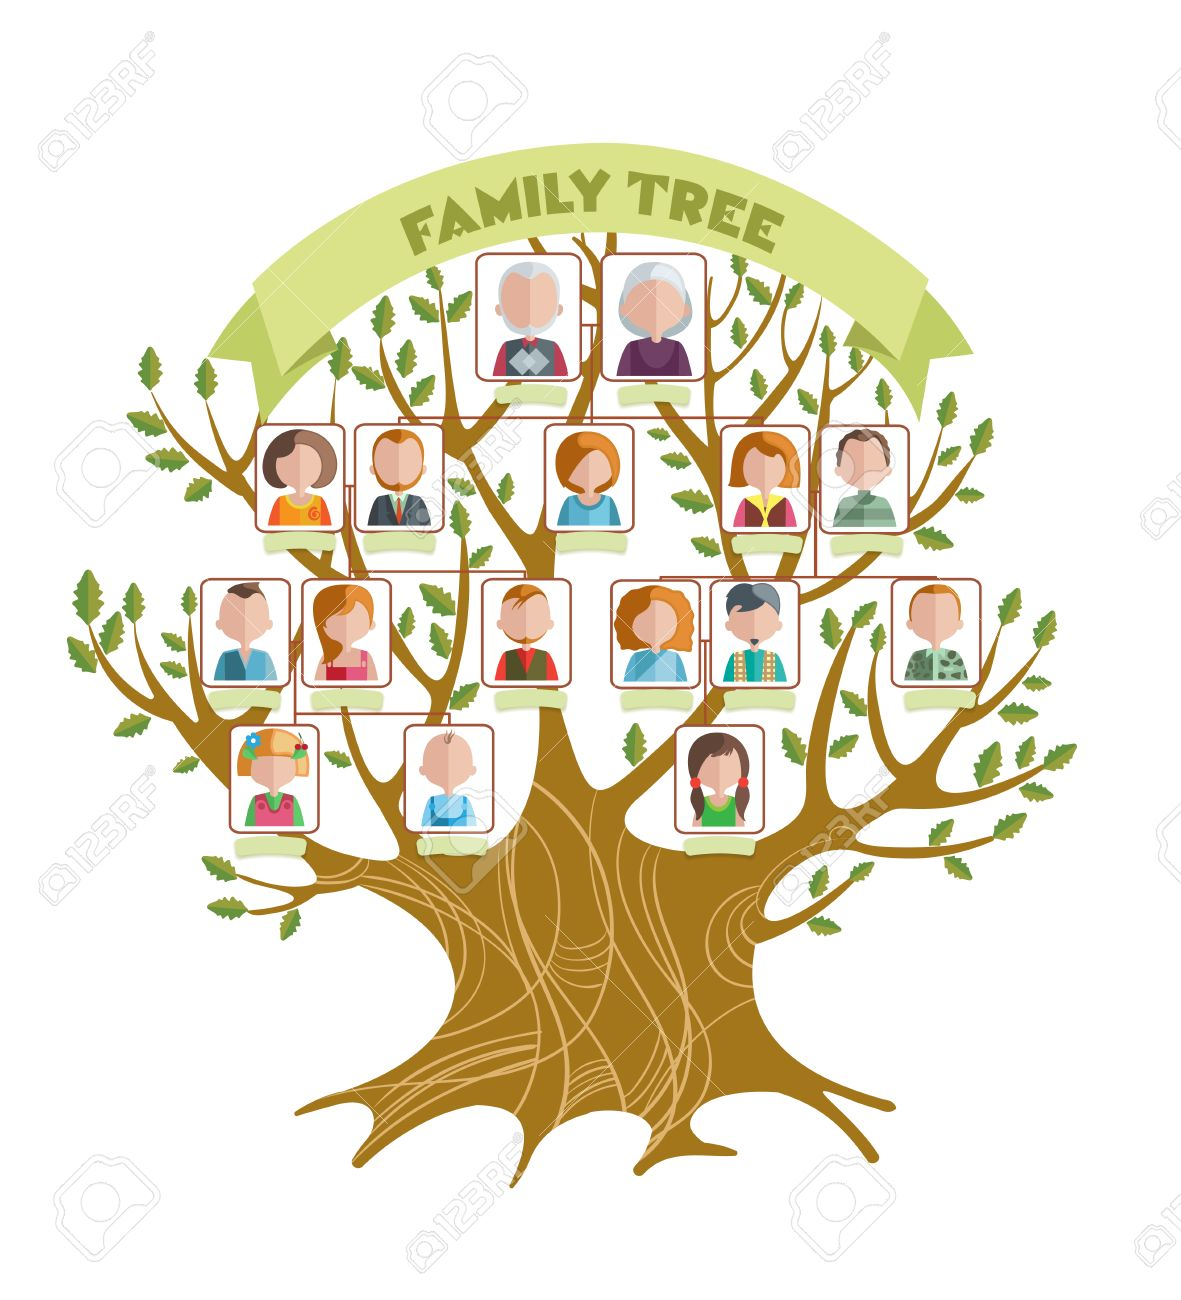 Concept Of Family Tree With Green Ribbon And Pictures Relatives On Branches Leaves Illustration